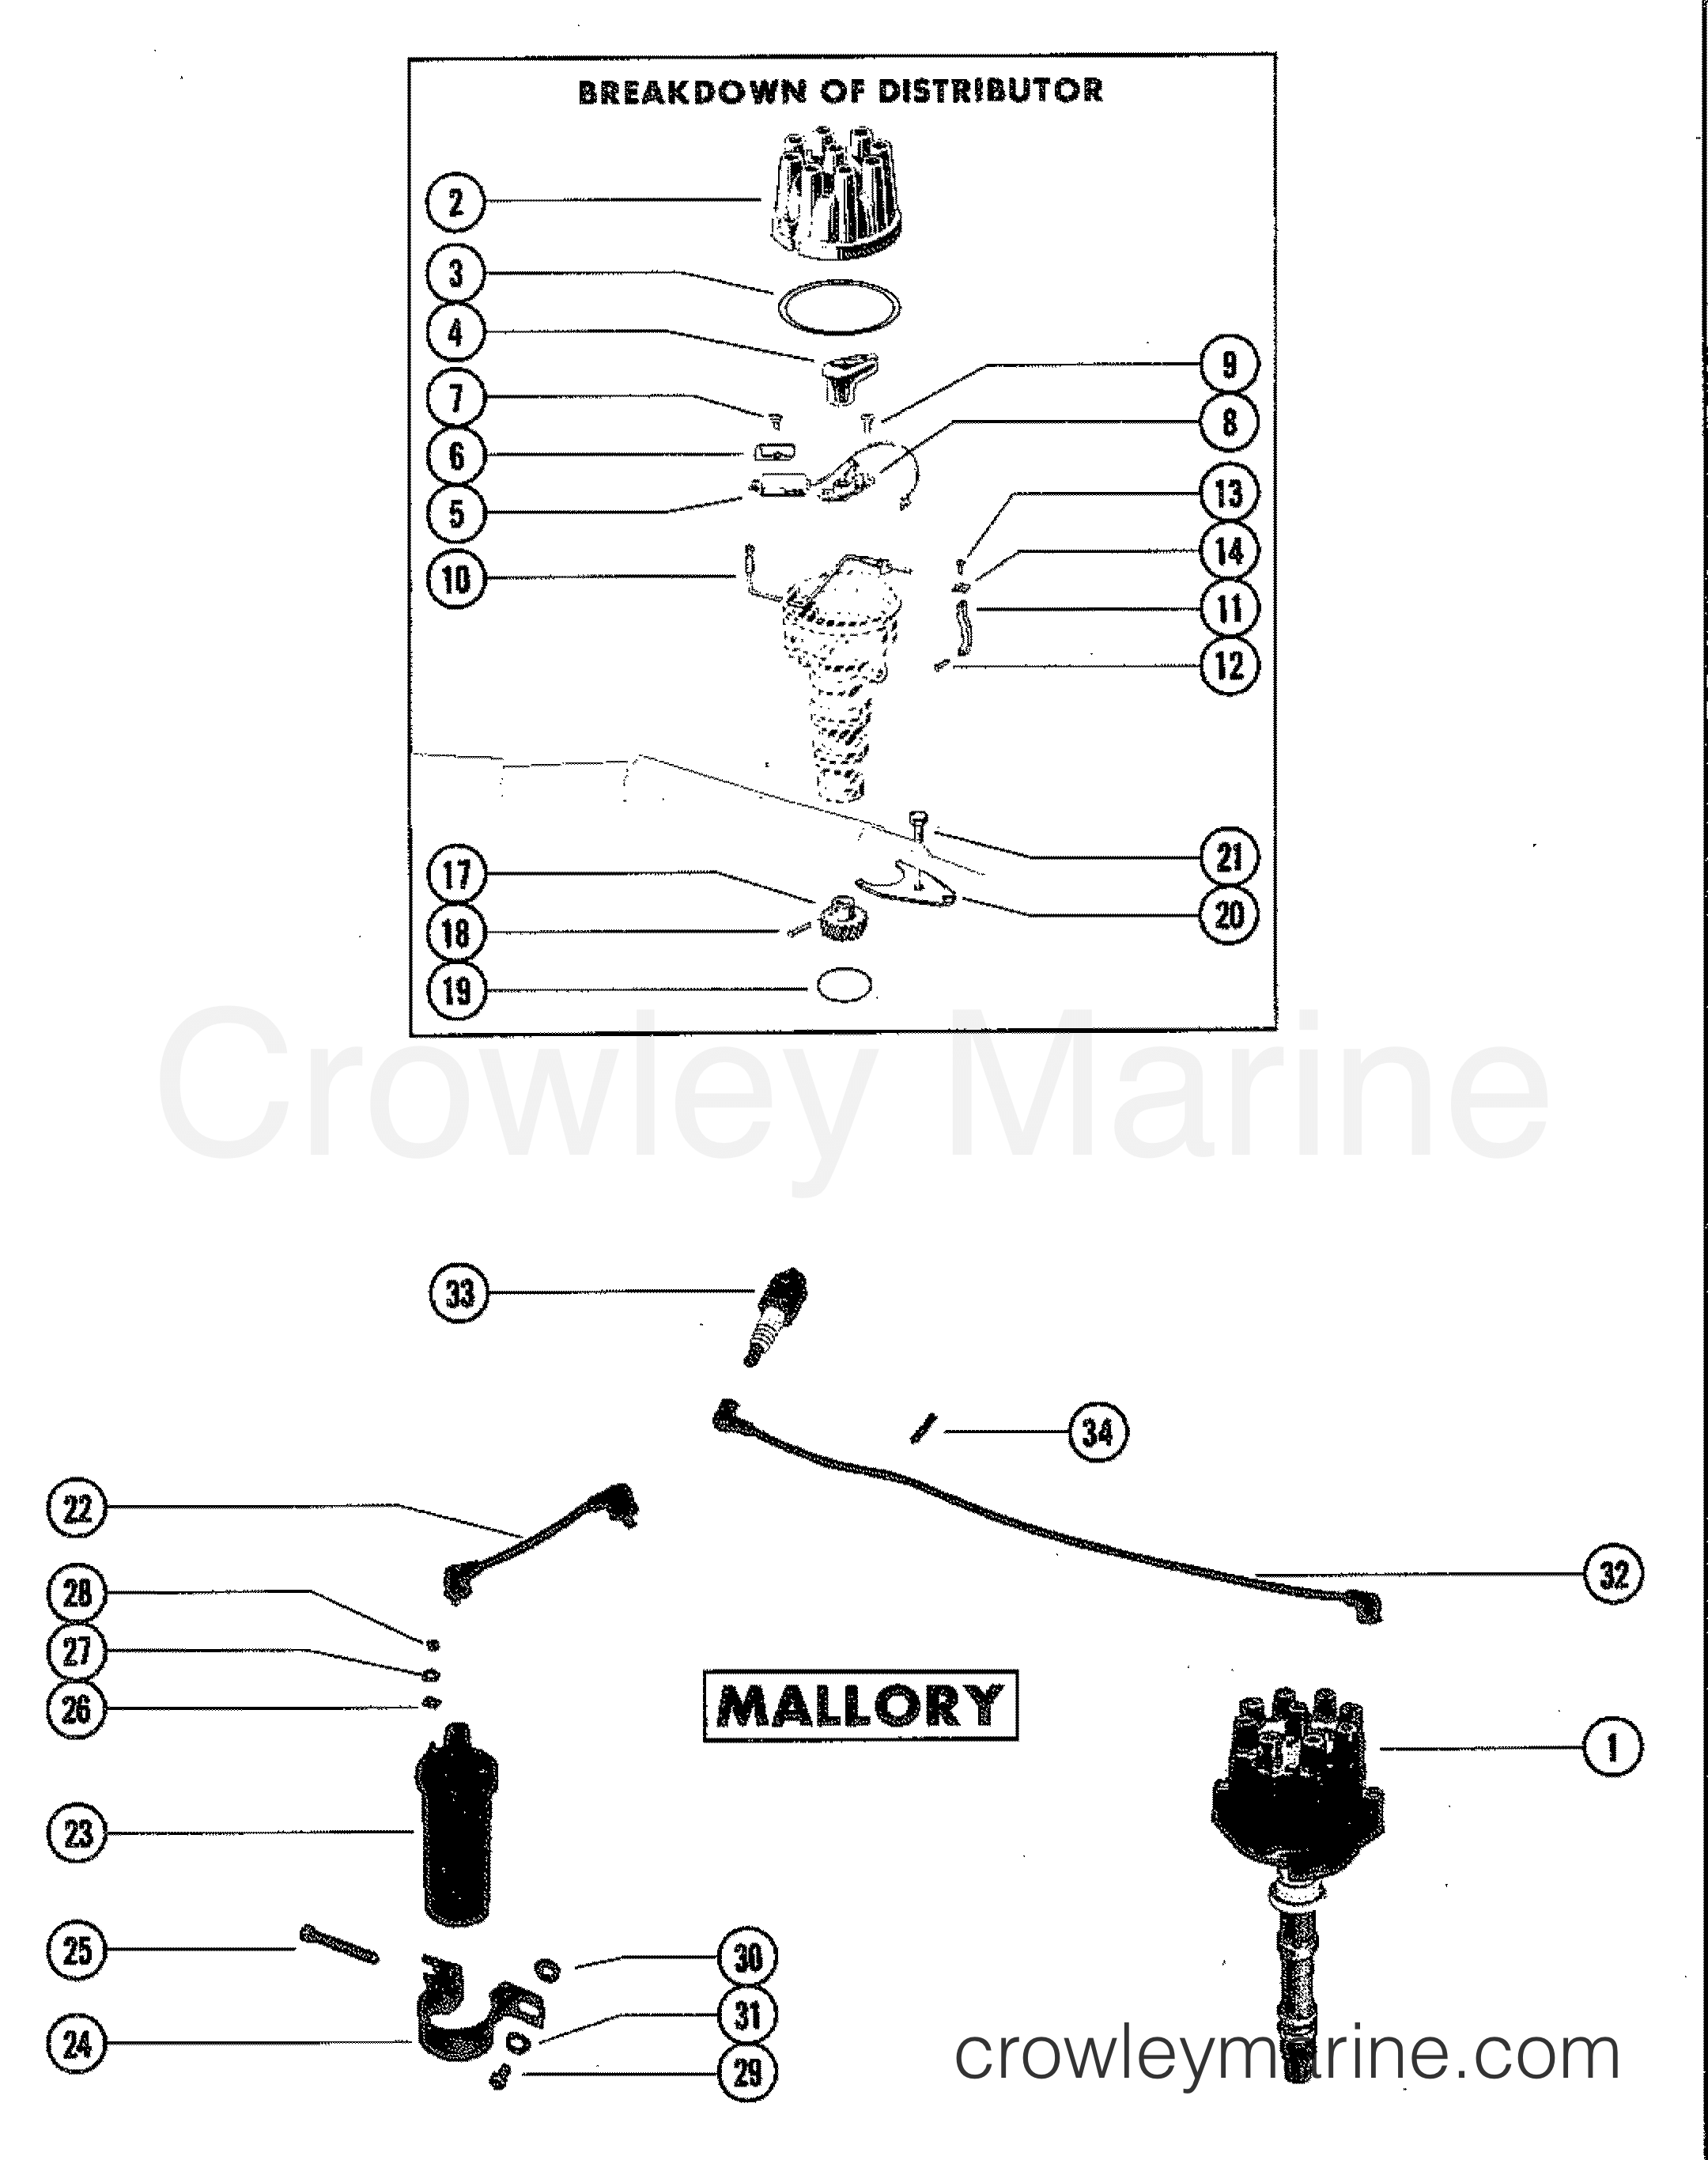 Unilite Distributor Parts Diagram Engine Control Wiring Mallory Assembly 1982 Mercruiser 898 08986342 Rh Crowleymarine Com 3756701